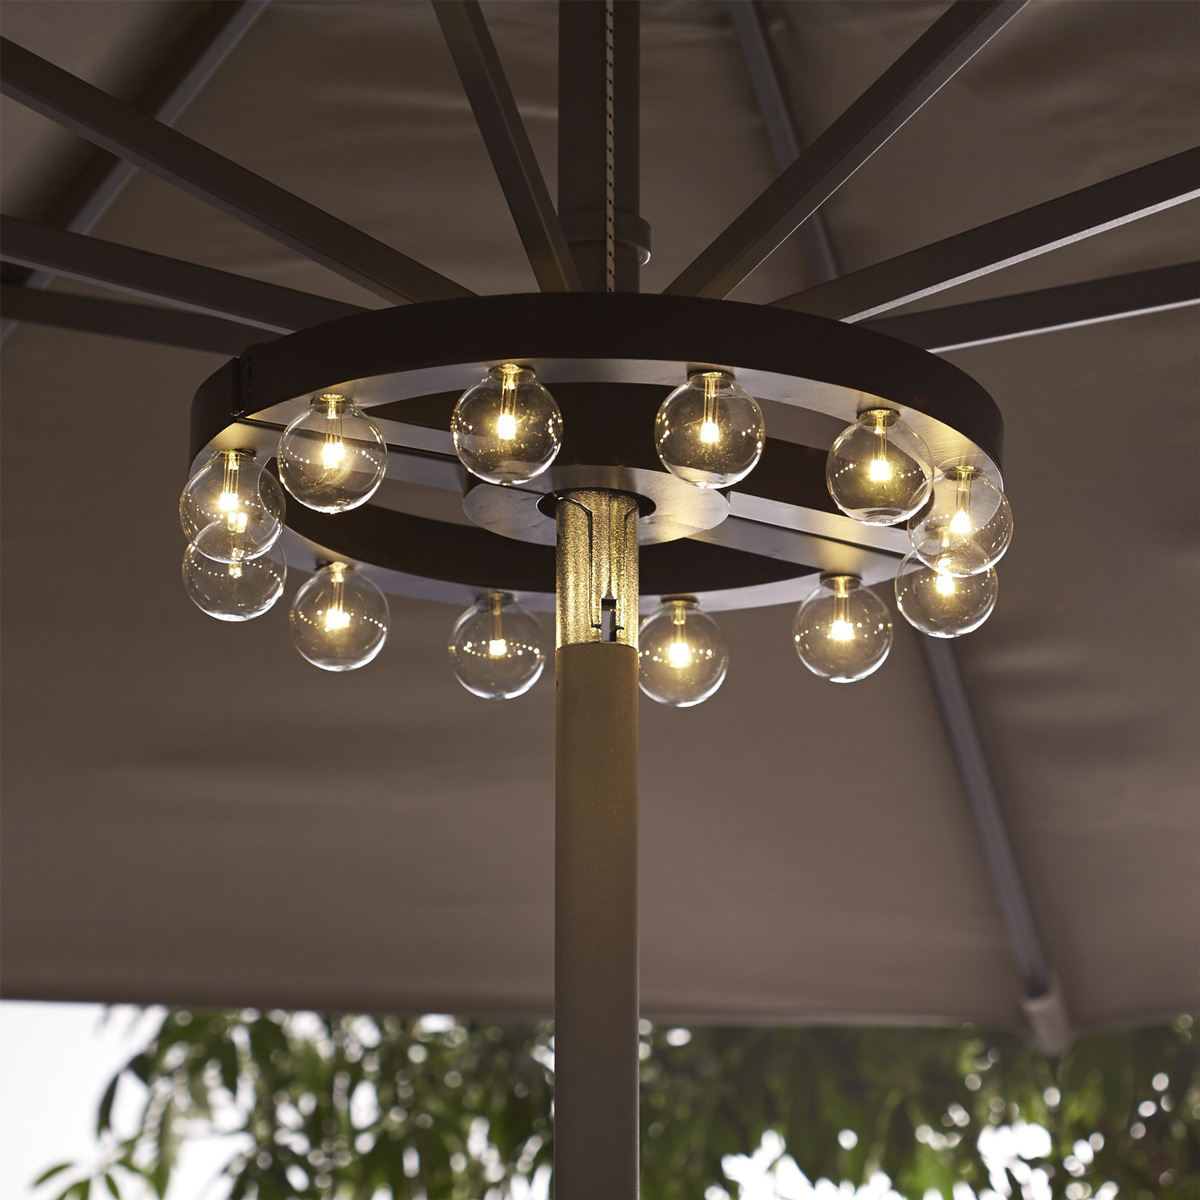 Nice Lighted Patio Umbrella With Stunning Bulb For Creating Romantic Nuance